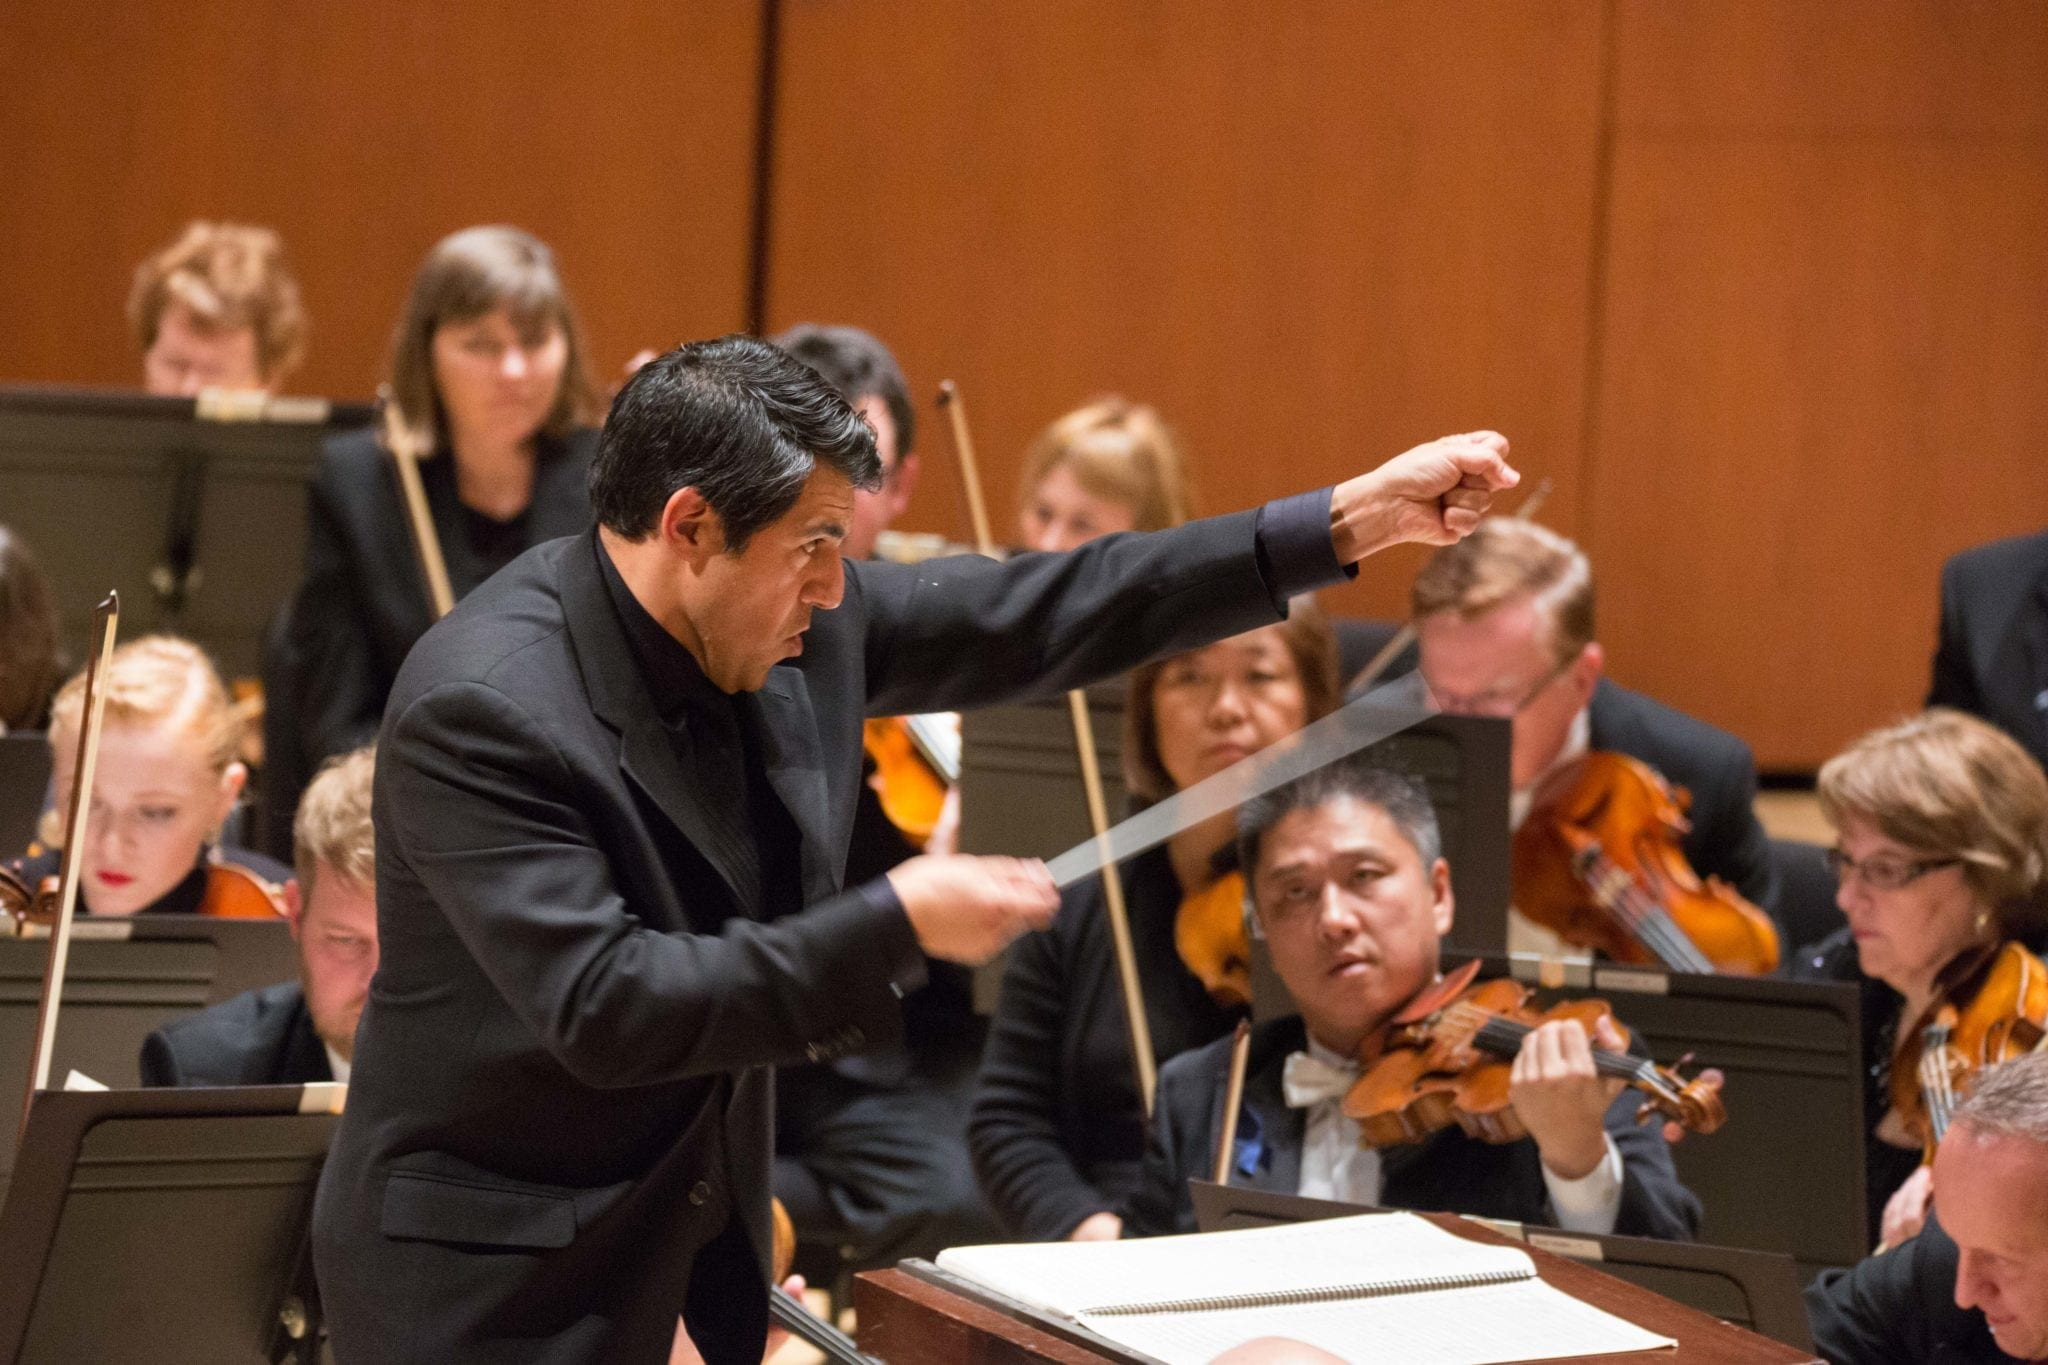 Under guest conductor Miguel Harth-Bedoya, the ASO performed one of its strongest shows of the season. (Photos by Jeff Roffman)